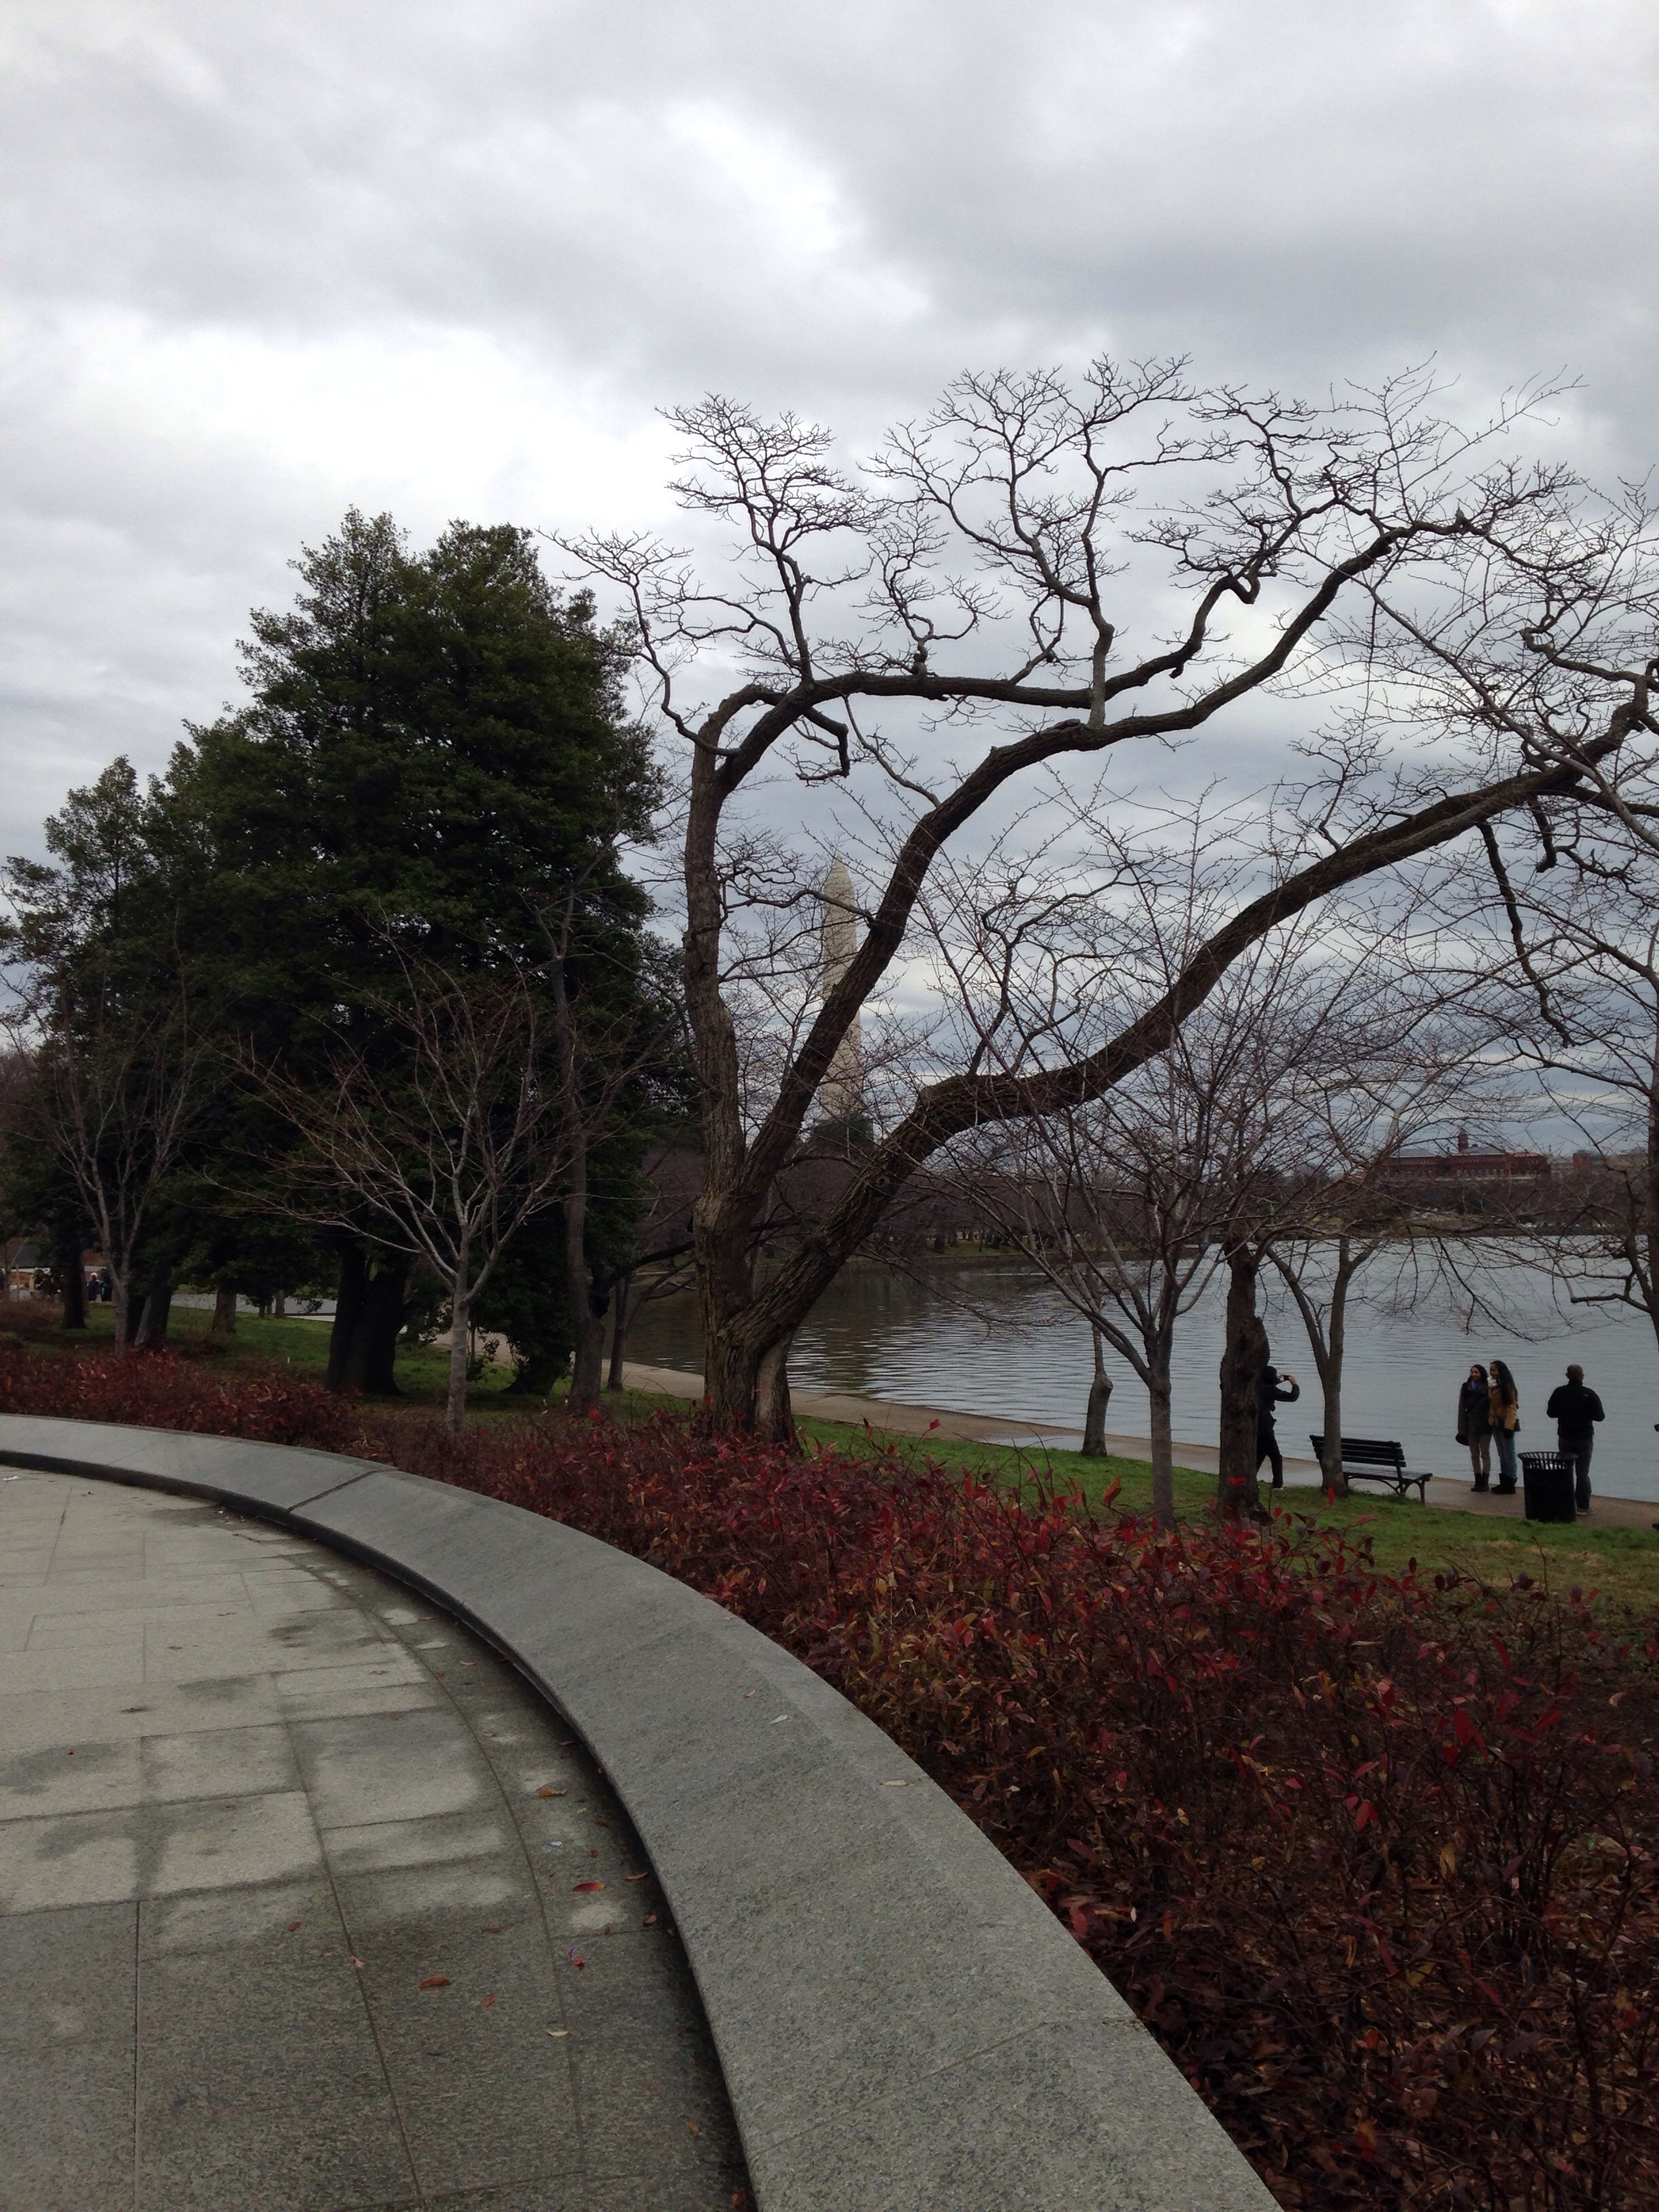 The Potomac in the distance. Parking for the memorial is quite a ways away from the actual memorial. In the winter, that equals one cold walk, but a walk that is well worth it.